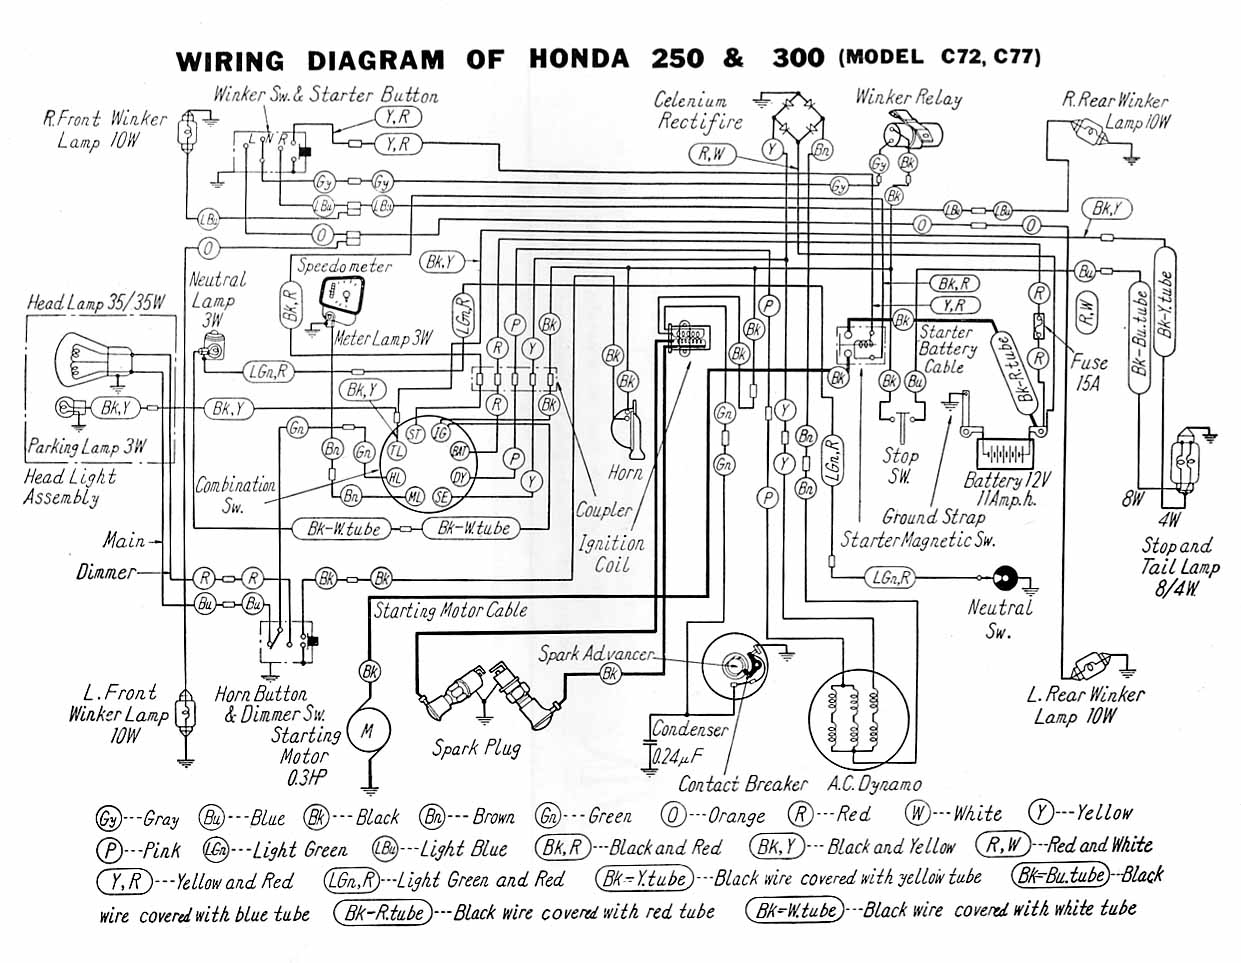 Ca77 1967 Wiring Diagram Free For You Honda Dream 1966 Library Rh 37 Yoobi De Mustang Pdf